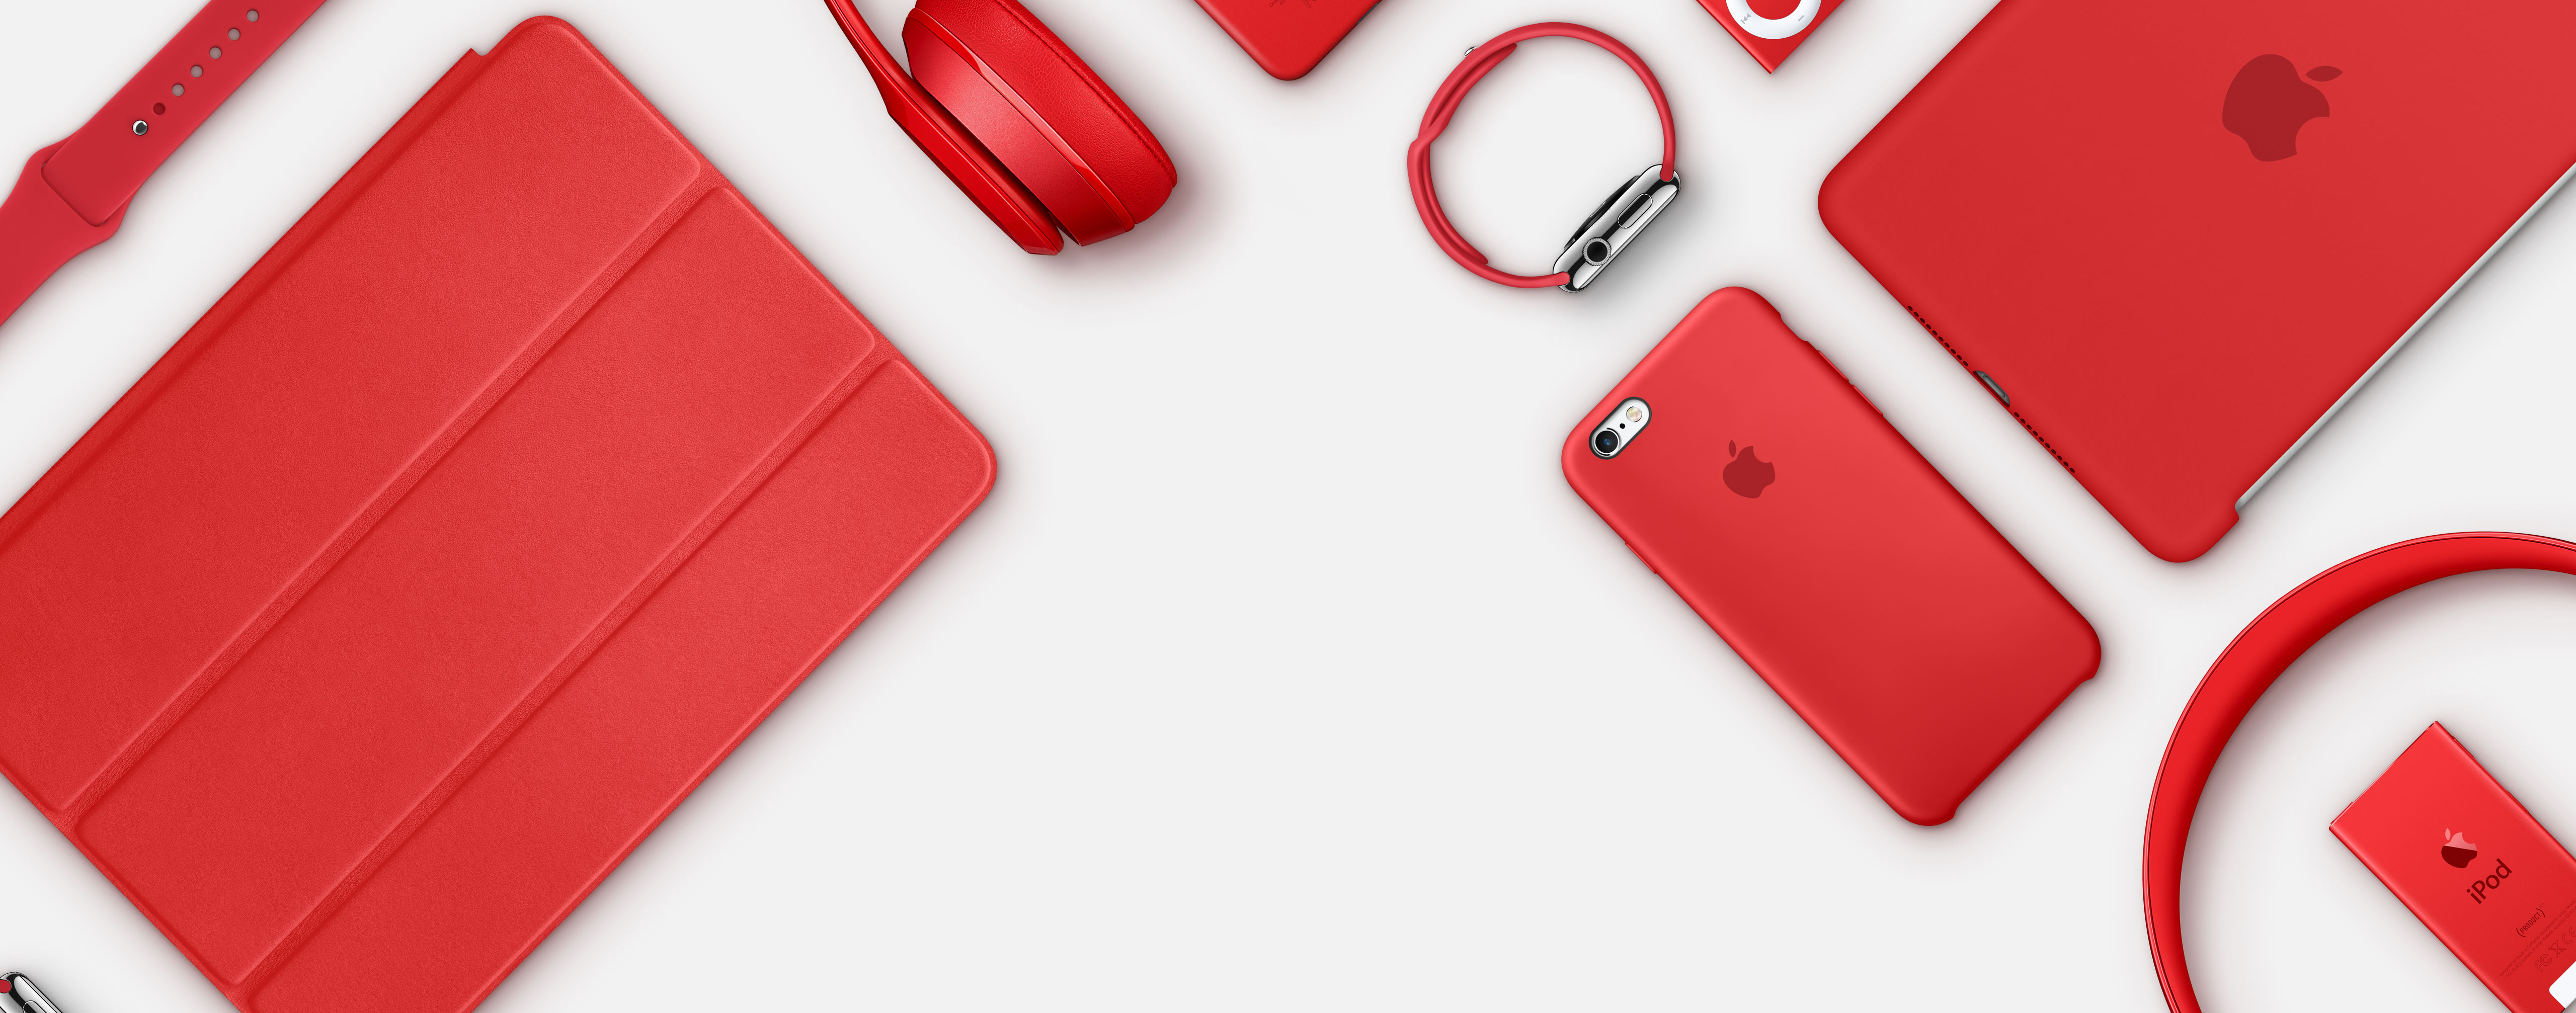 Iphone X Inside Wallpaper Hd World Aids Day Product Red Inspired Wallpapers